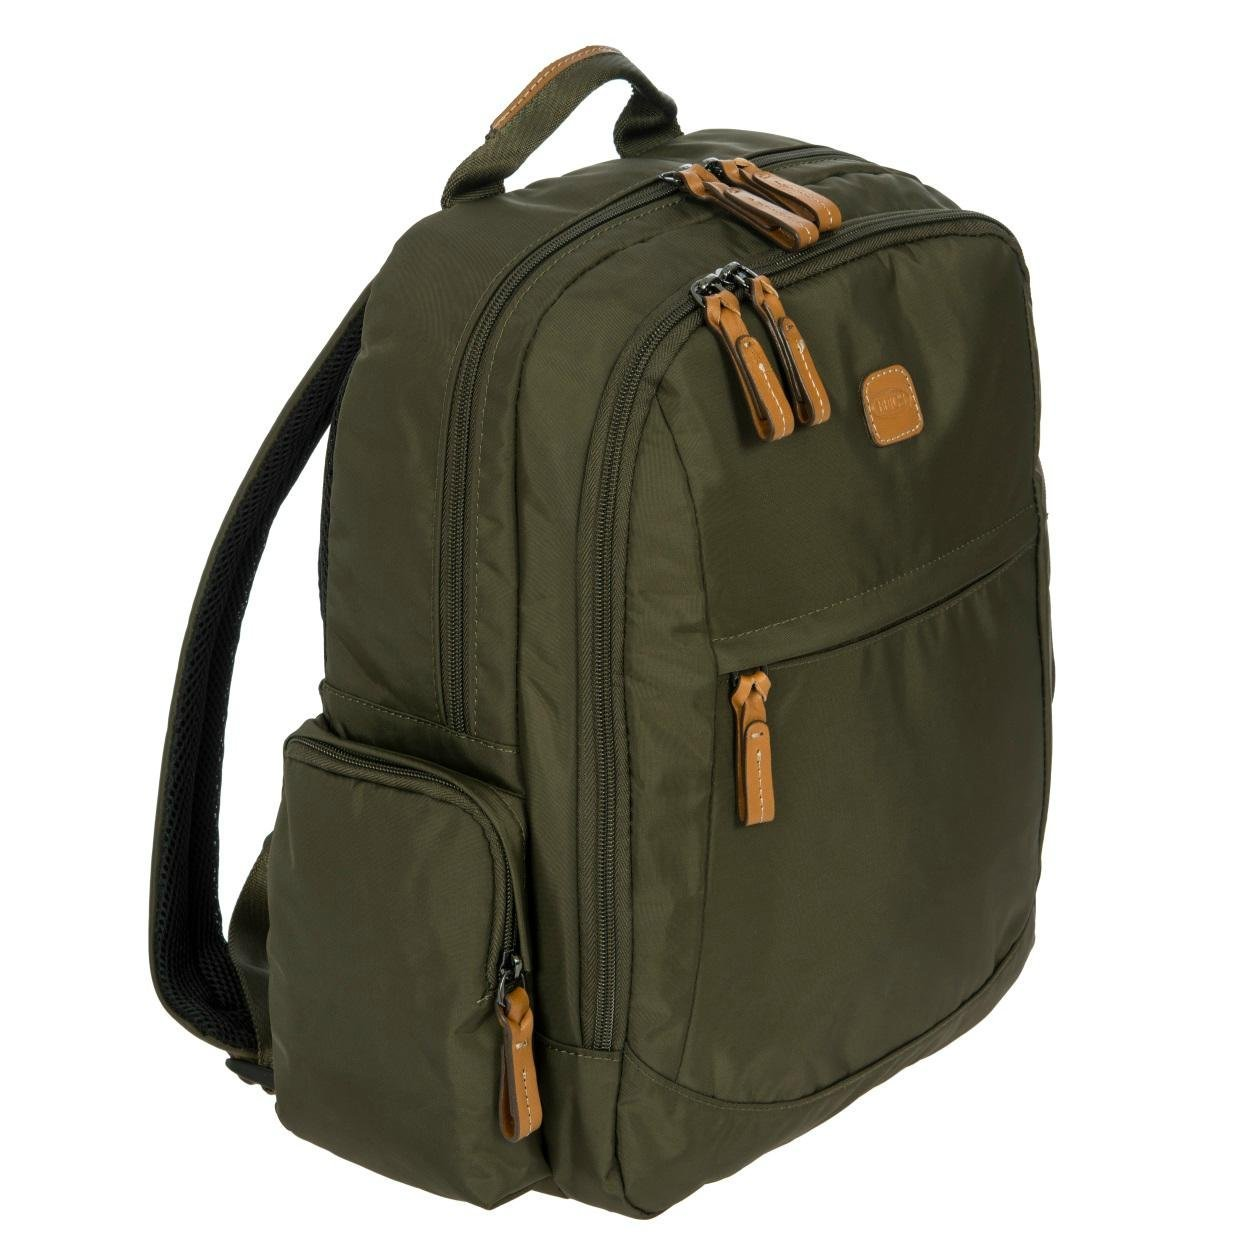 Bric's X-Bag/x-Travel 2.0 Nomad Laptop|Tablet Business Backpack, Navy, One Size by Bric's (Image #2)